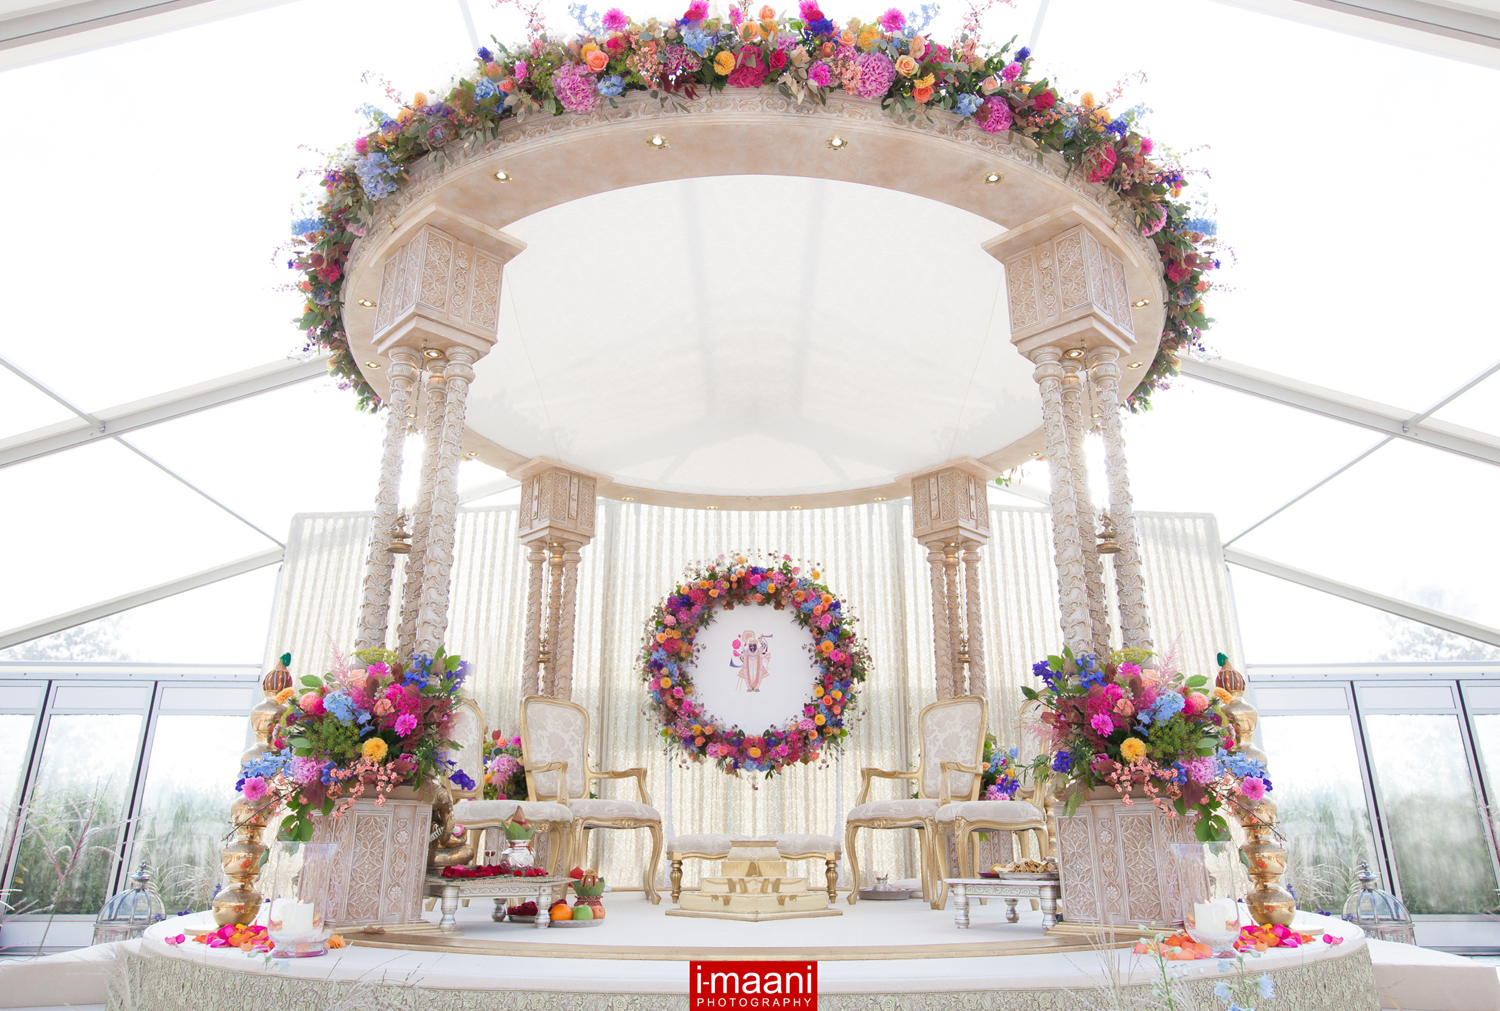 Shreya Palace 4 Pillar Mandap with a floral Halo in the background